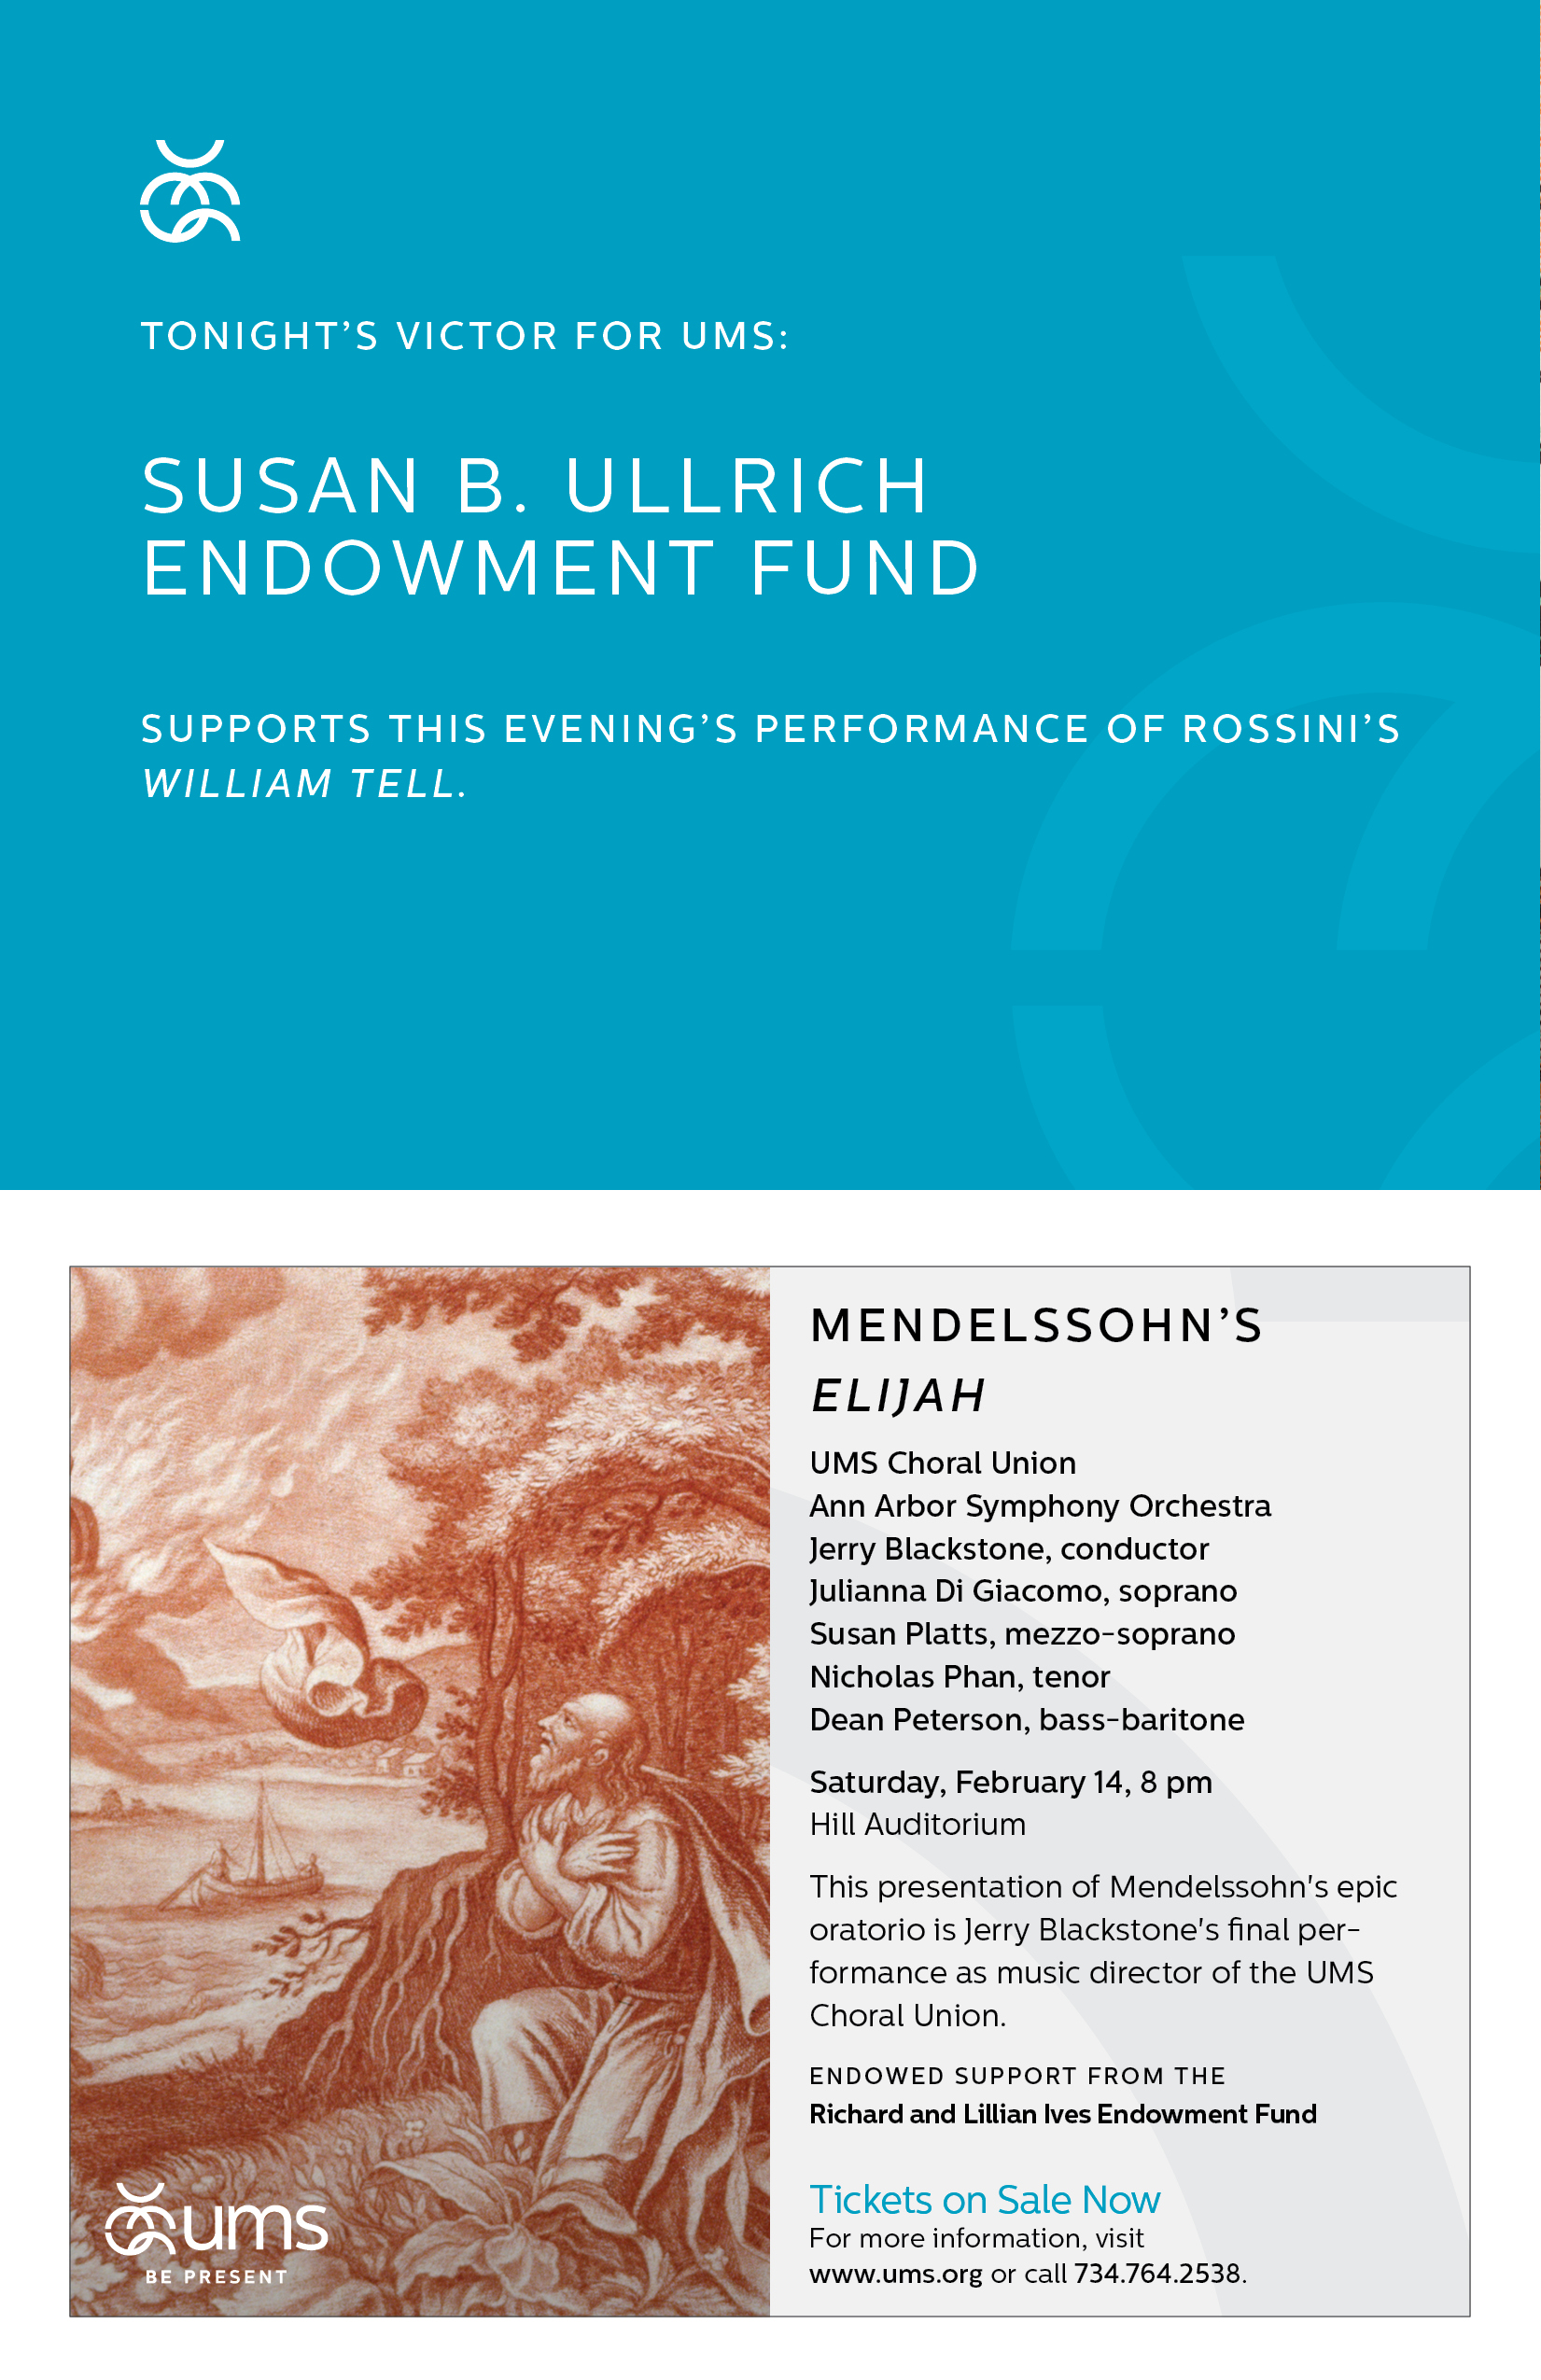 UMS Concert Program, December 6, 2014 - January 11, 2015: Handel's Messiah; Rossini's William Tell; Helen & Edgar image